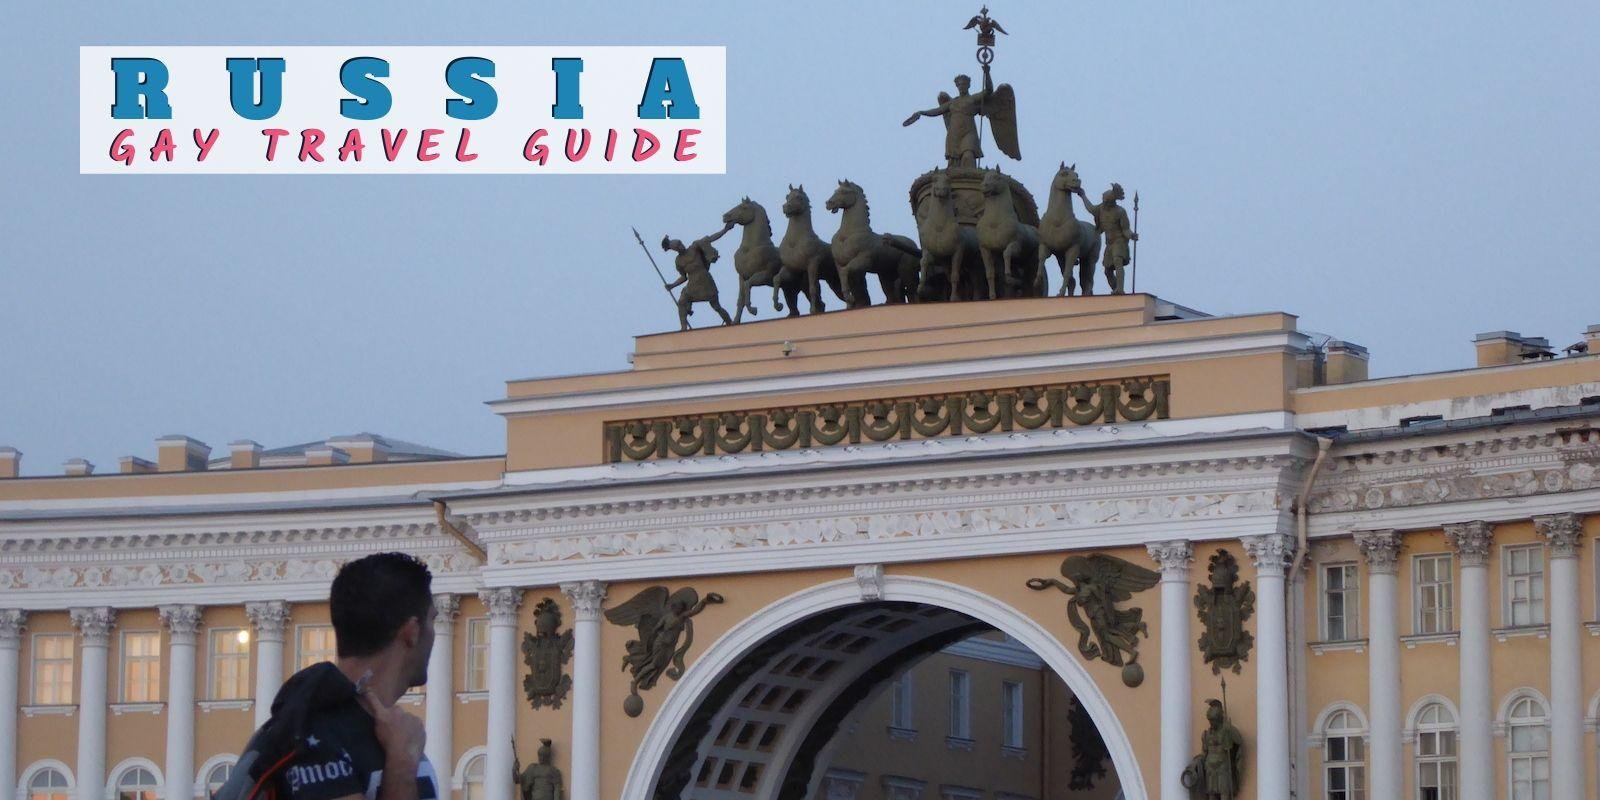 Our complete gay travel guide to Russia with everything the gay traveller needs to know